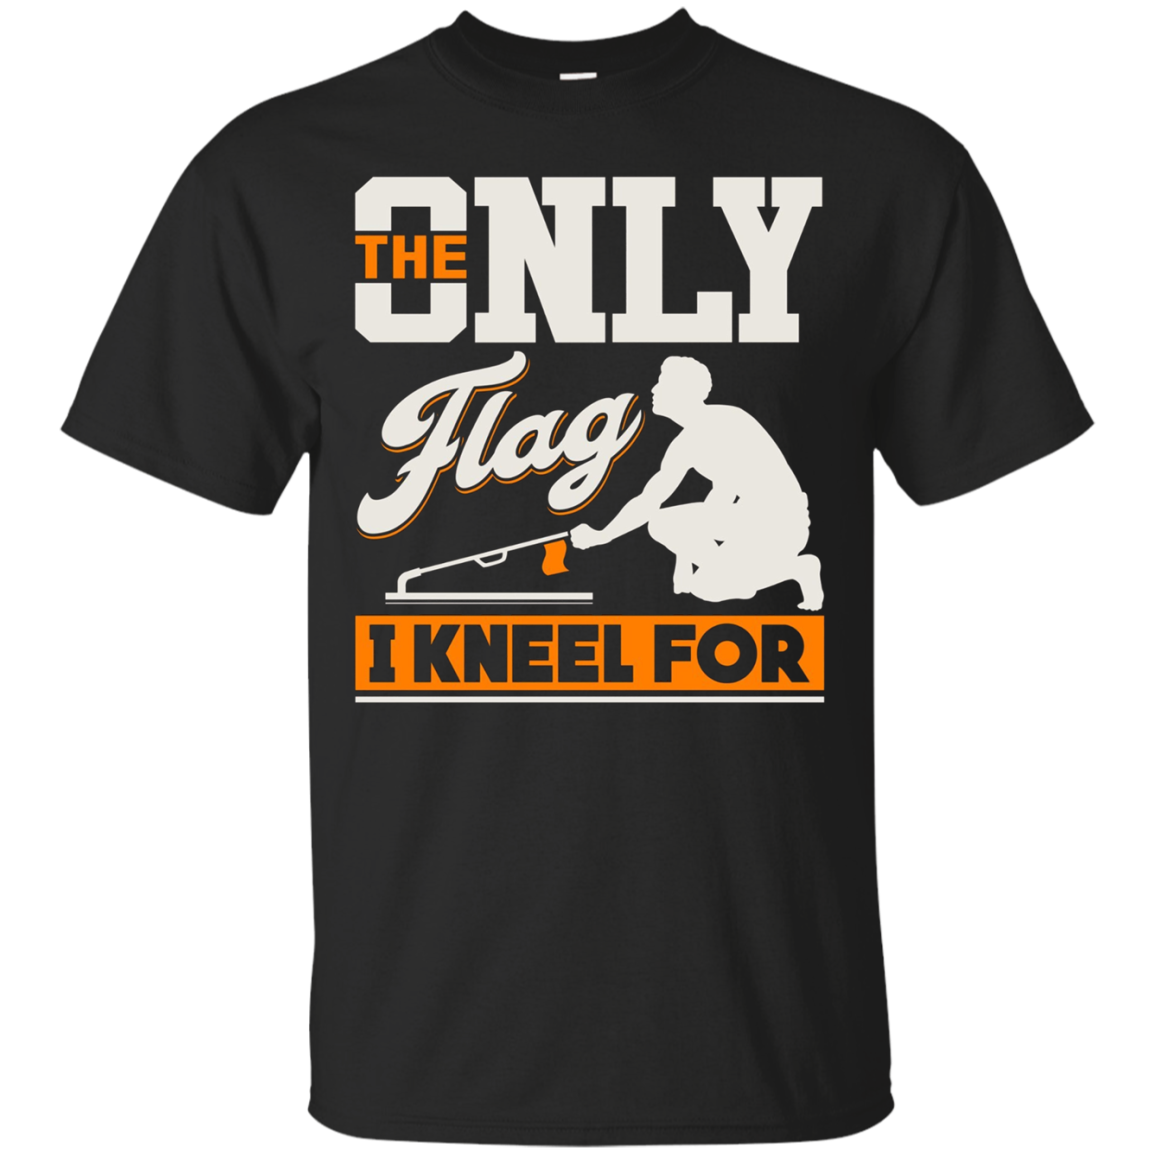 The only Flag I kneel for - Ice Fishing Tip-Up Flag T-Shirt